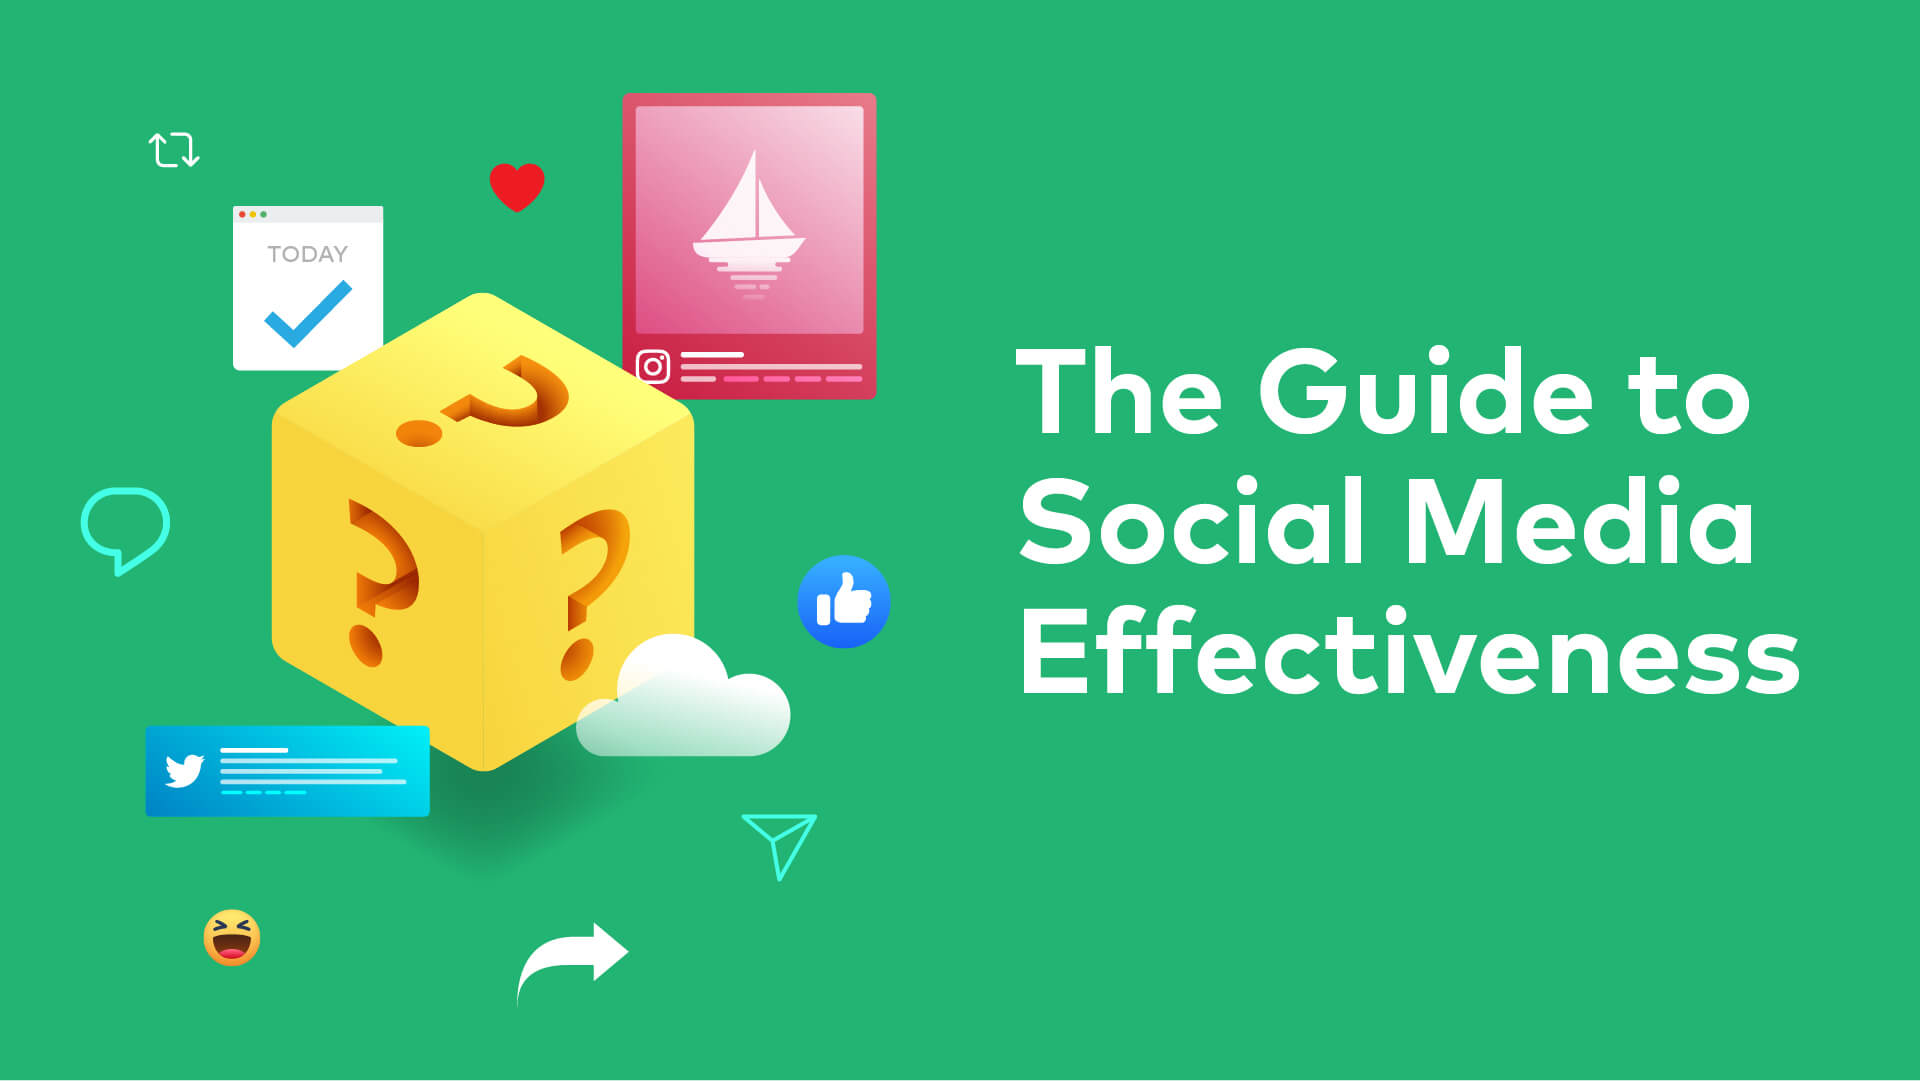 Cover image for post: The Guide to Social Media Effectiveness